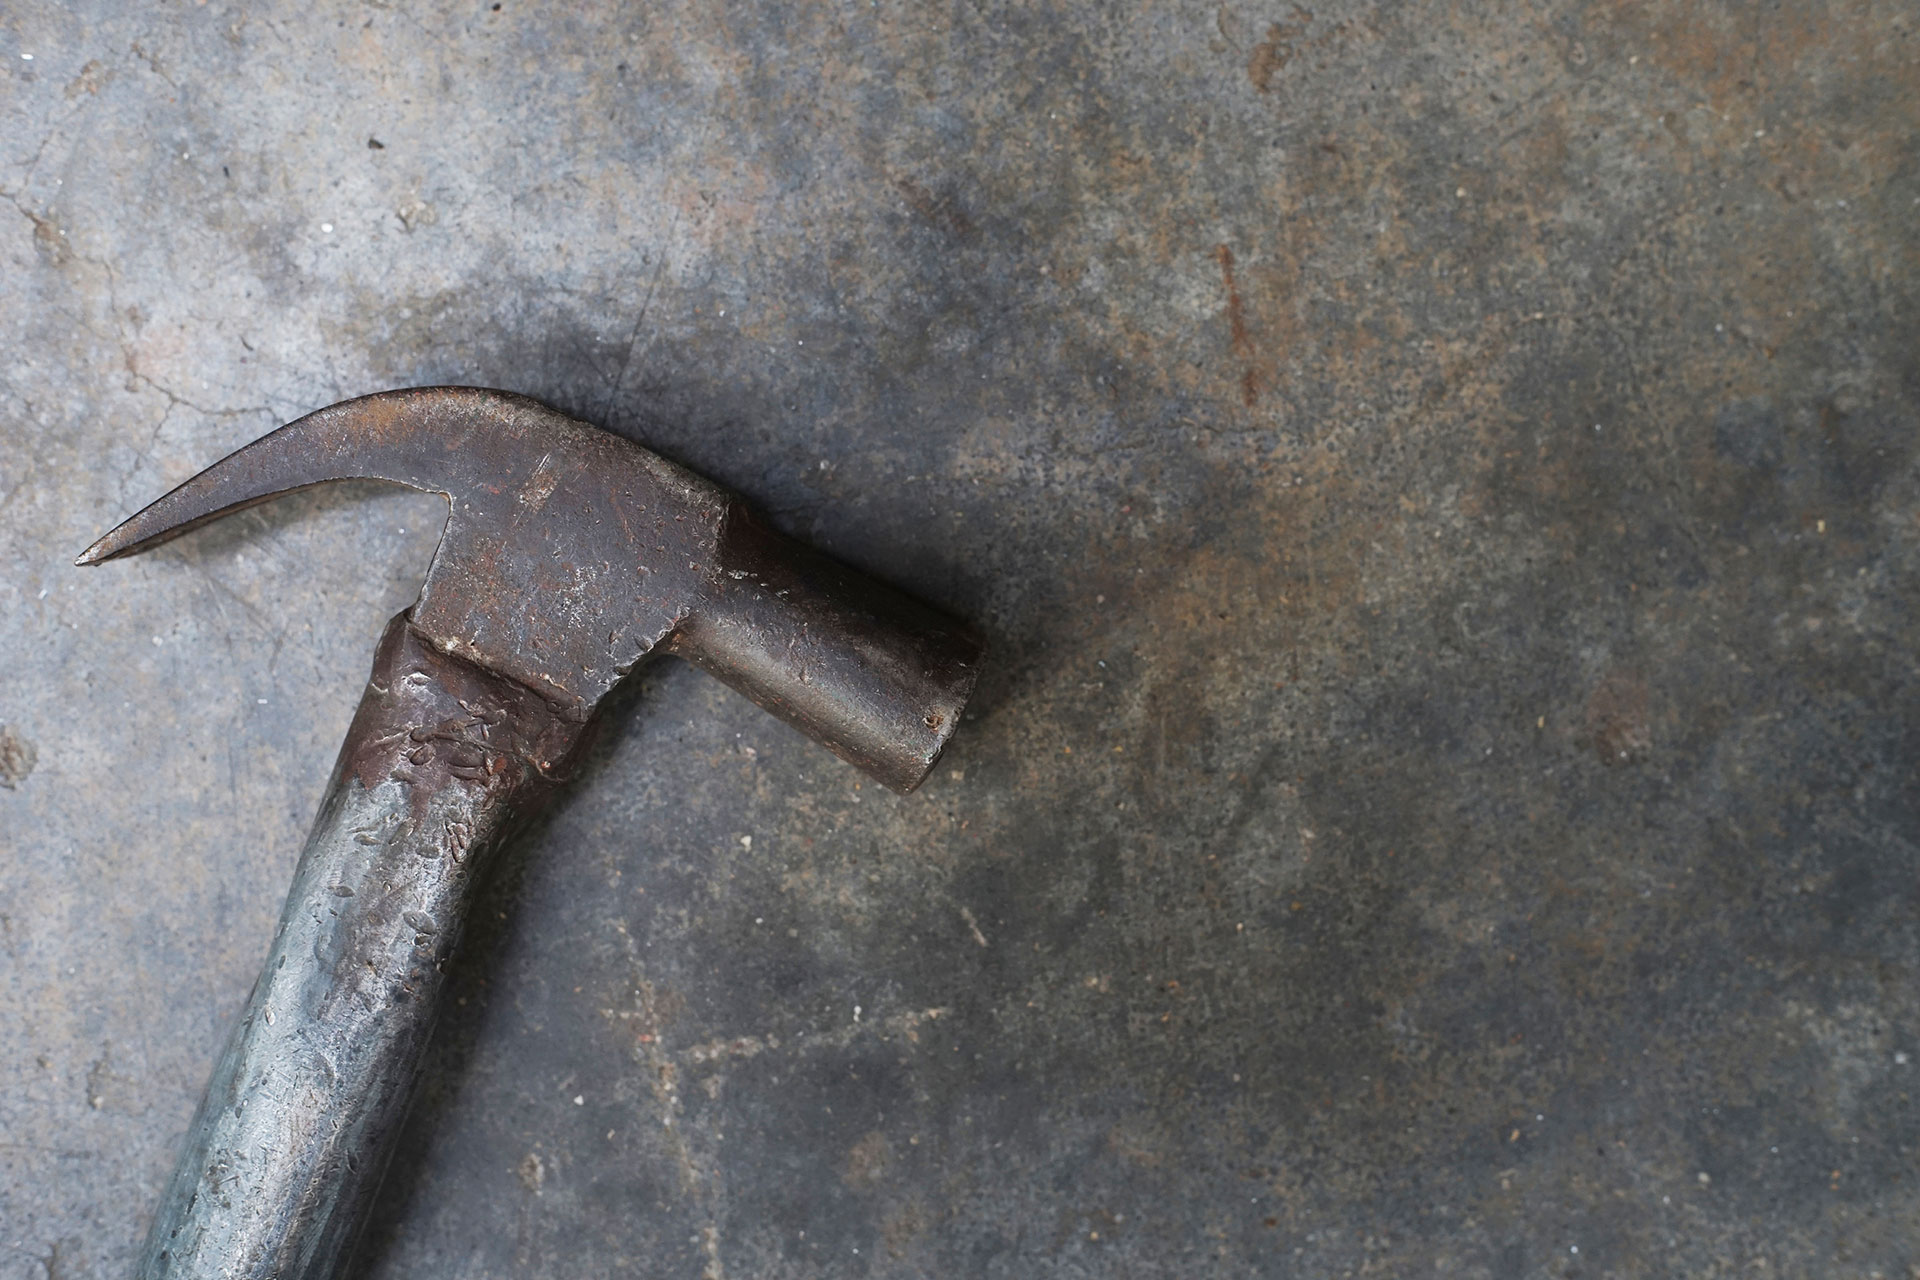 close-up-hammer-on-grunge-cement-background-000084531939_Full